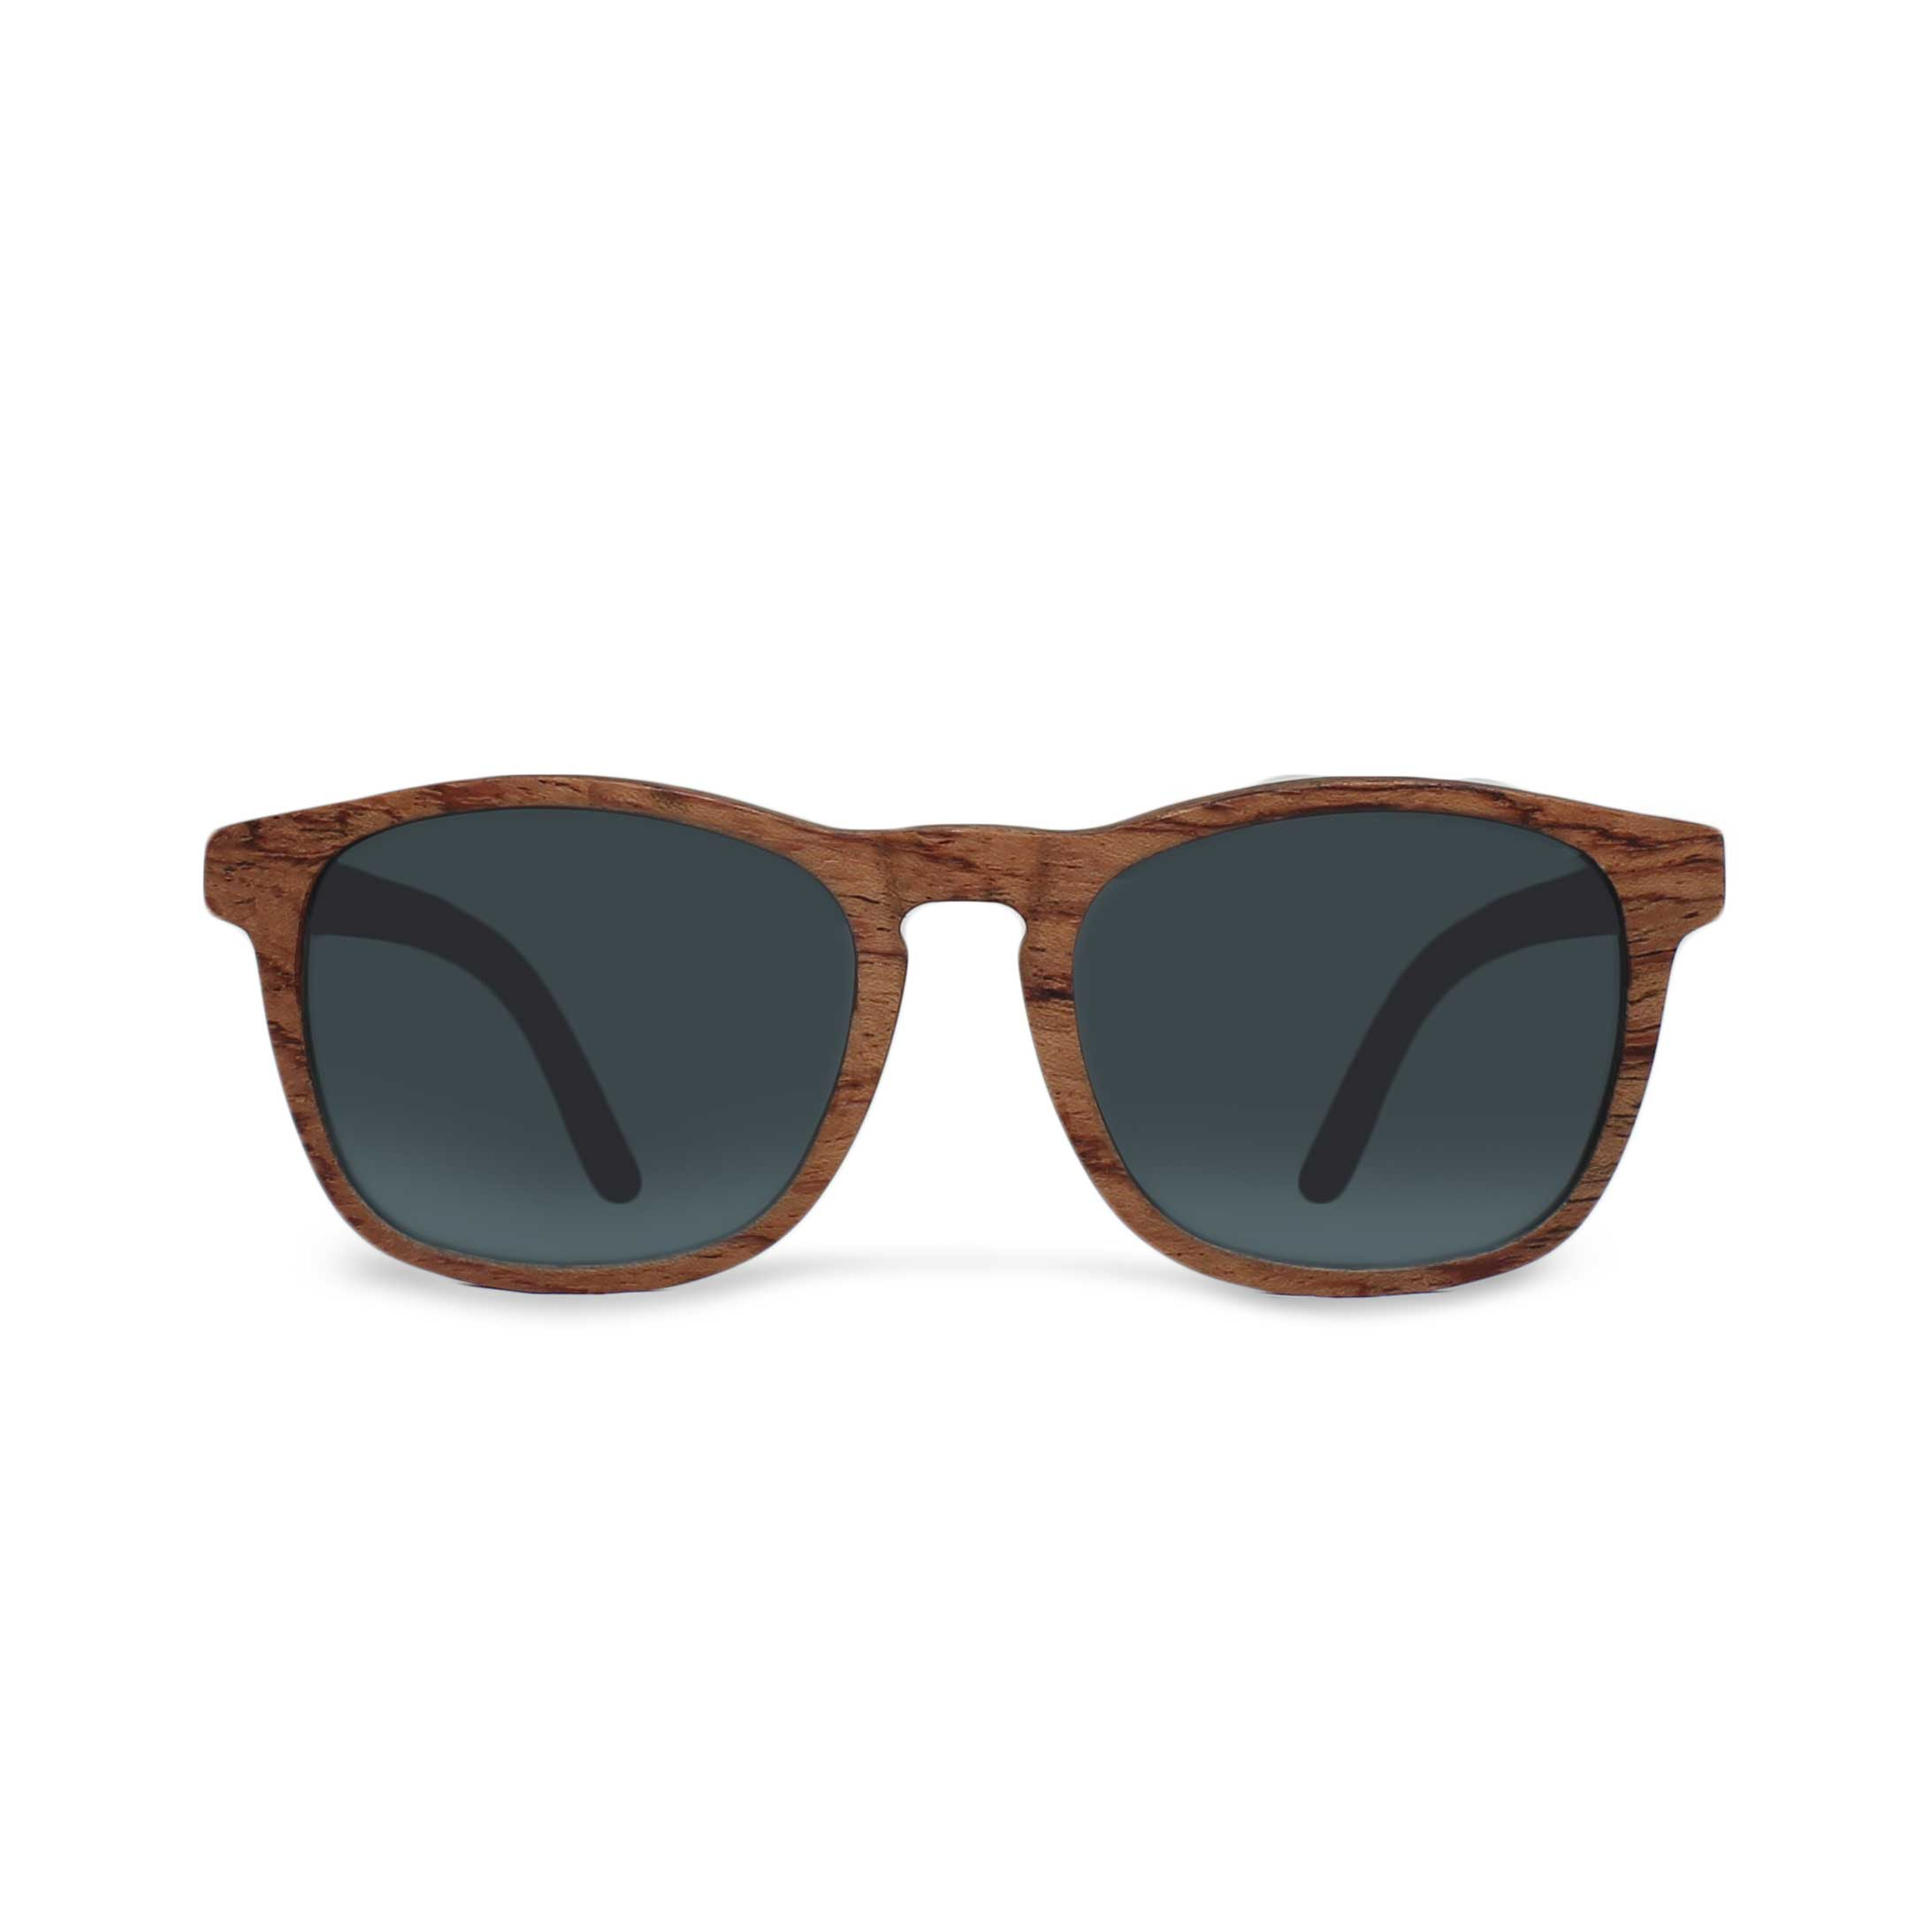 ventus sunglasses time for wood